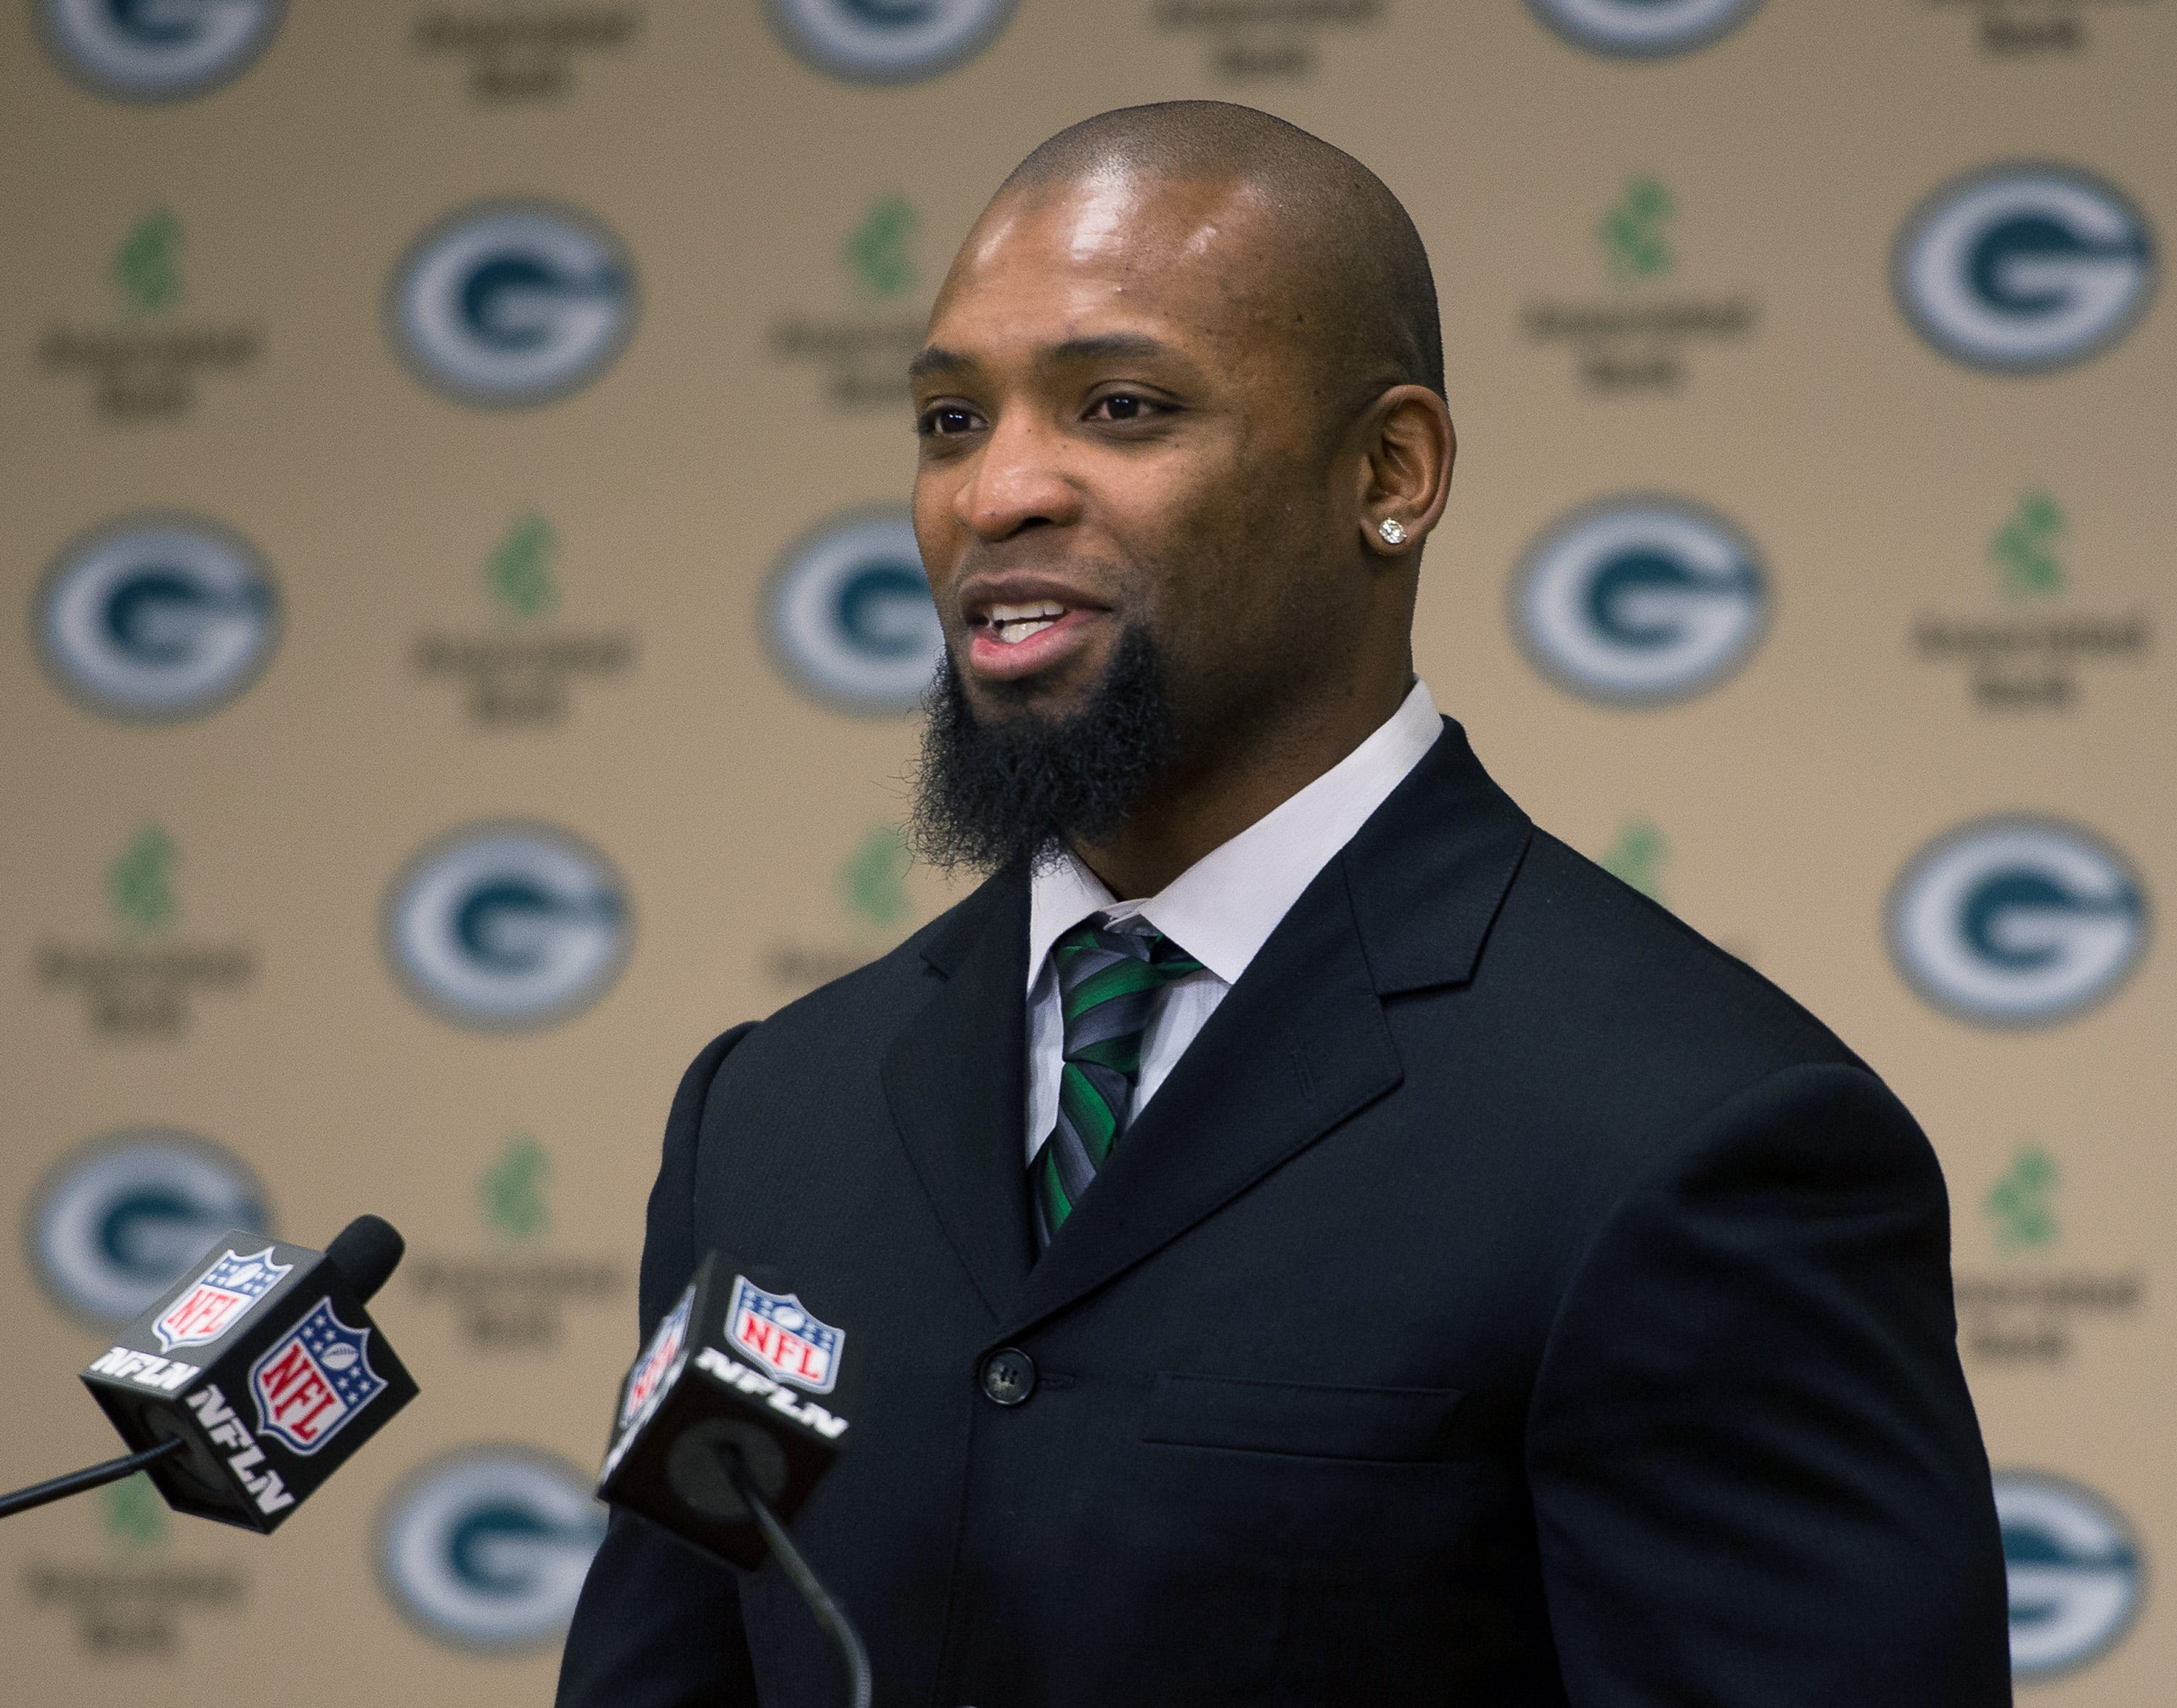 ahman green 98 yard run